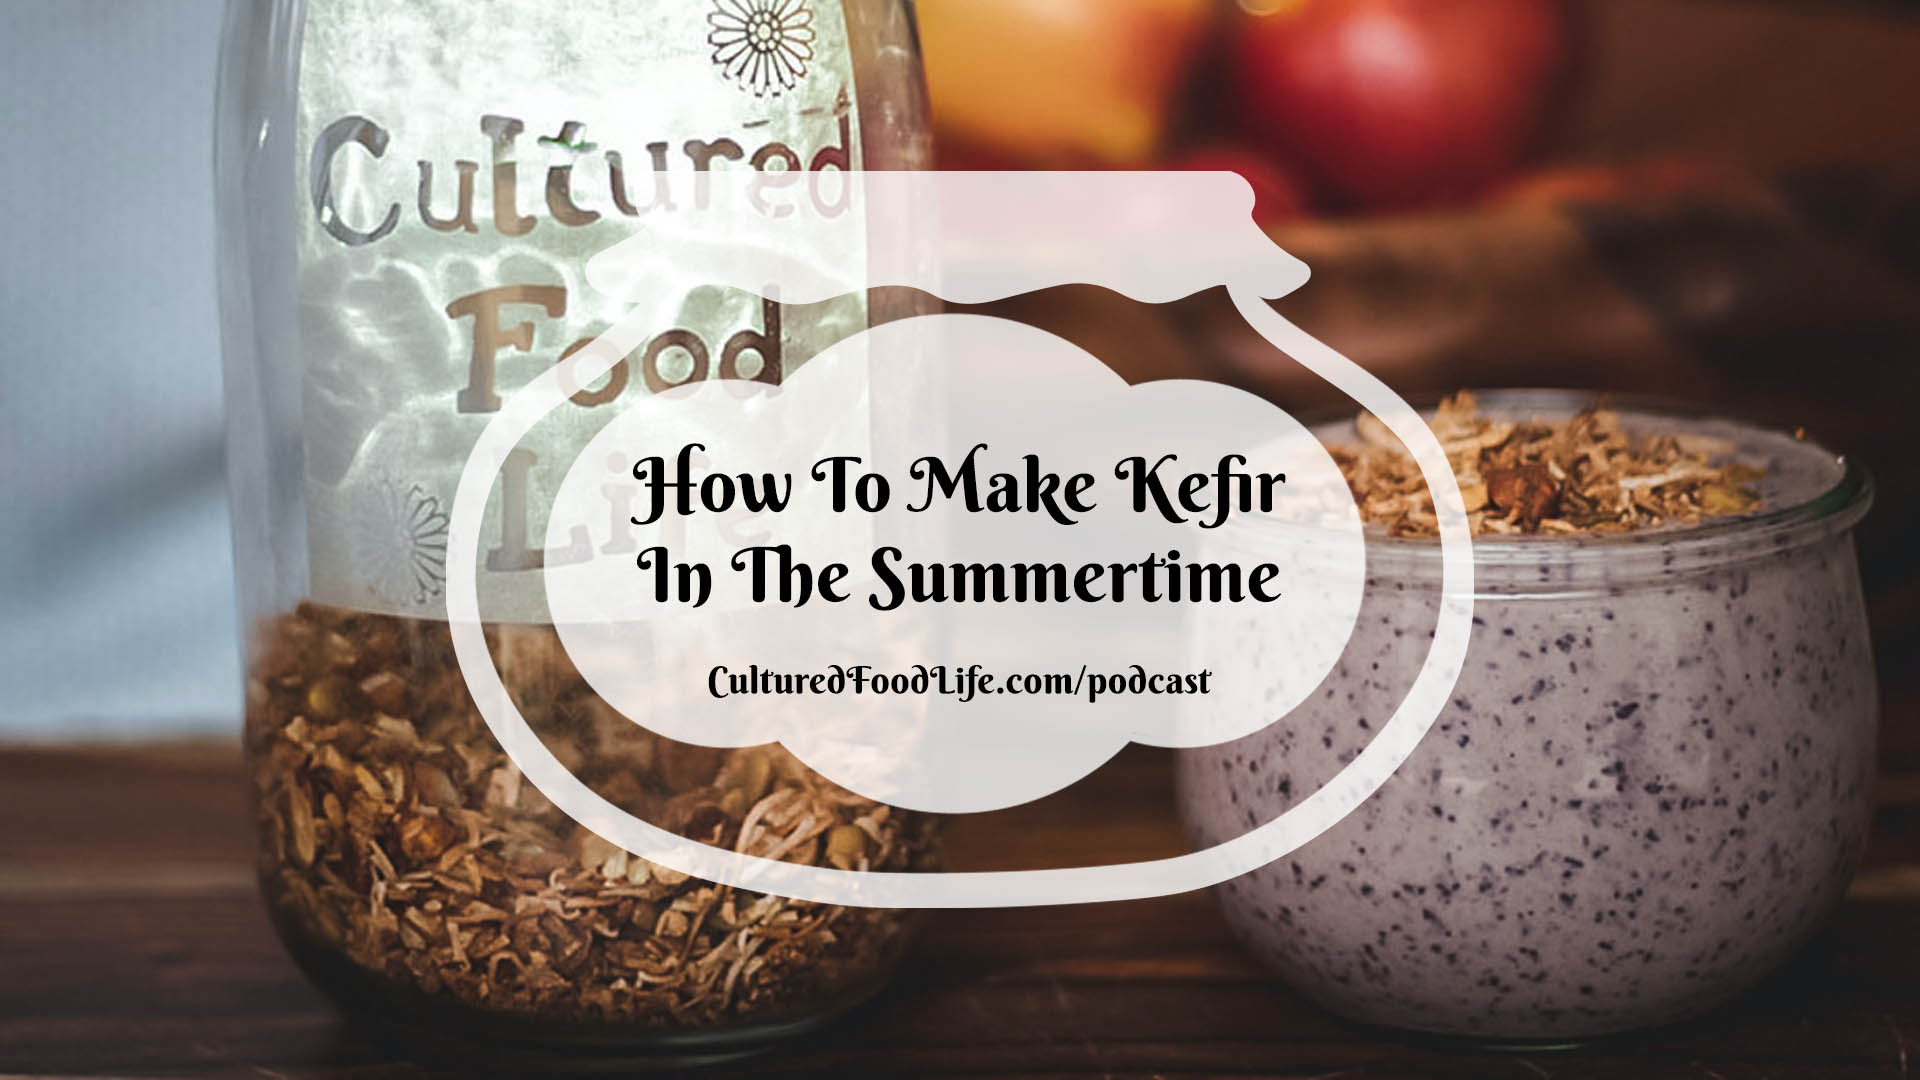 How To Make Kefir In The Summertime